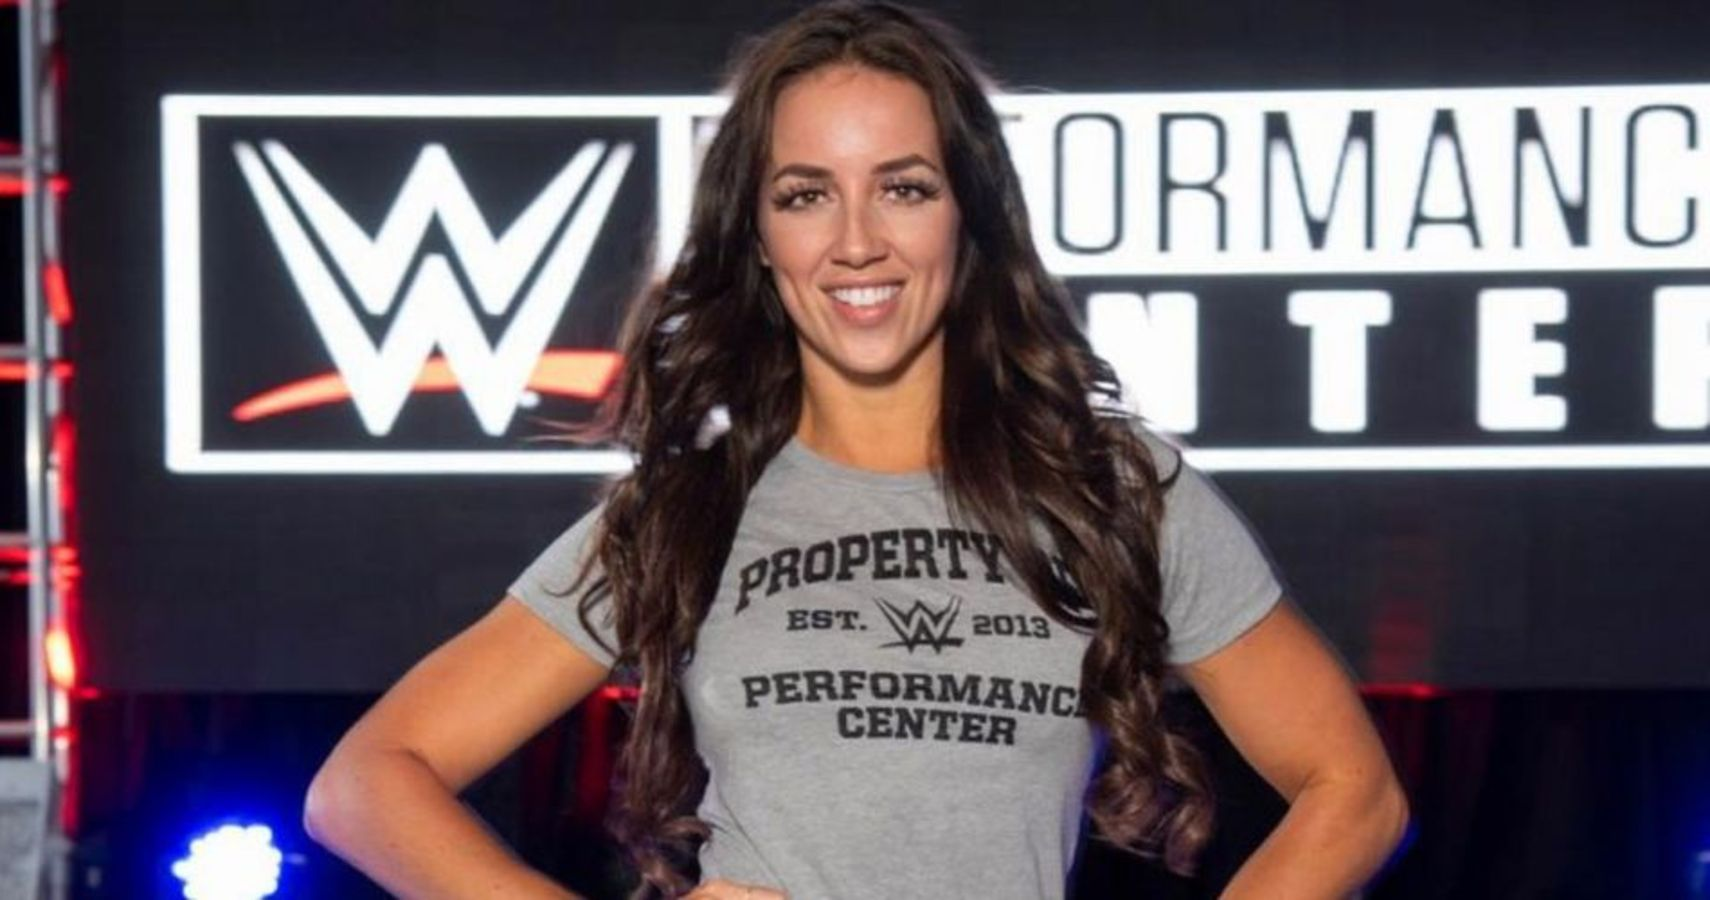 Chelsea Green Undergoing Physical Therapy At WWE Performance Center